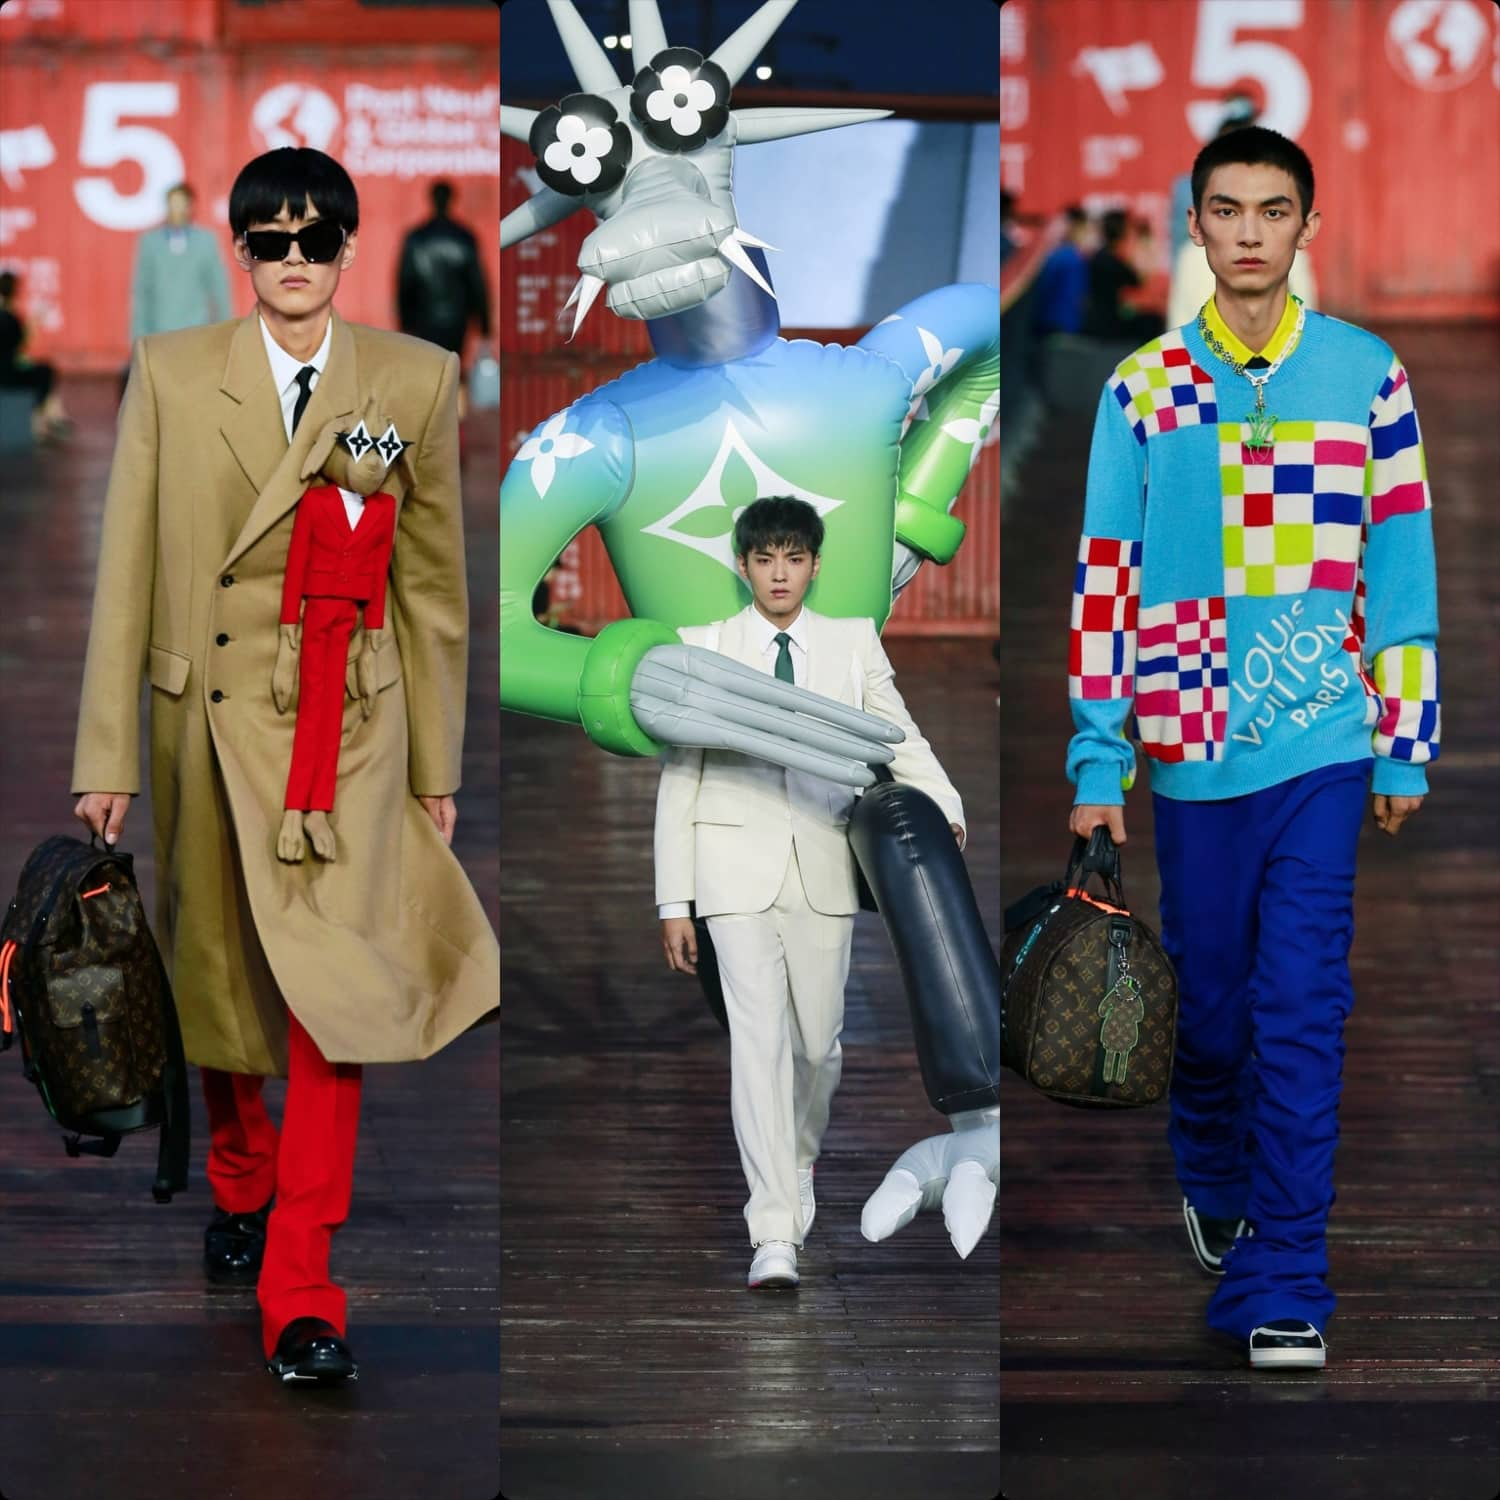 Louis Vuitton Spring Summer 2021 Menswear Shanghai. RUNWAY MAGAZINE ® Collections. RUNWAY NOW / RUNWAY NEW